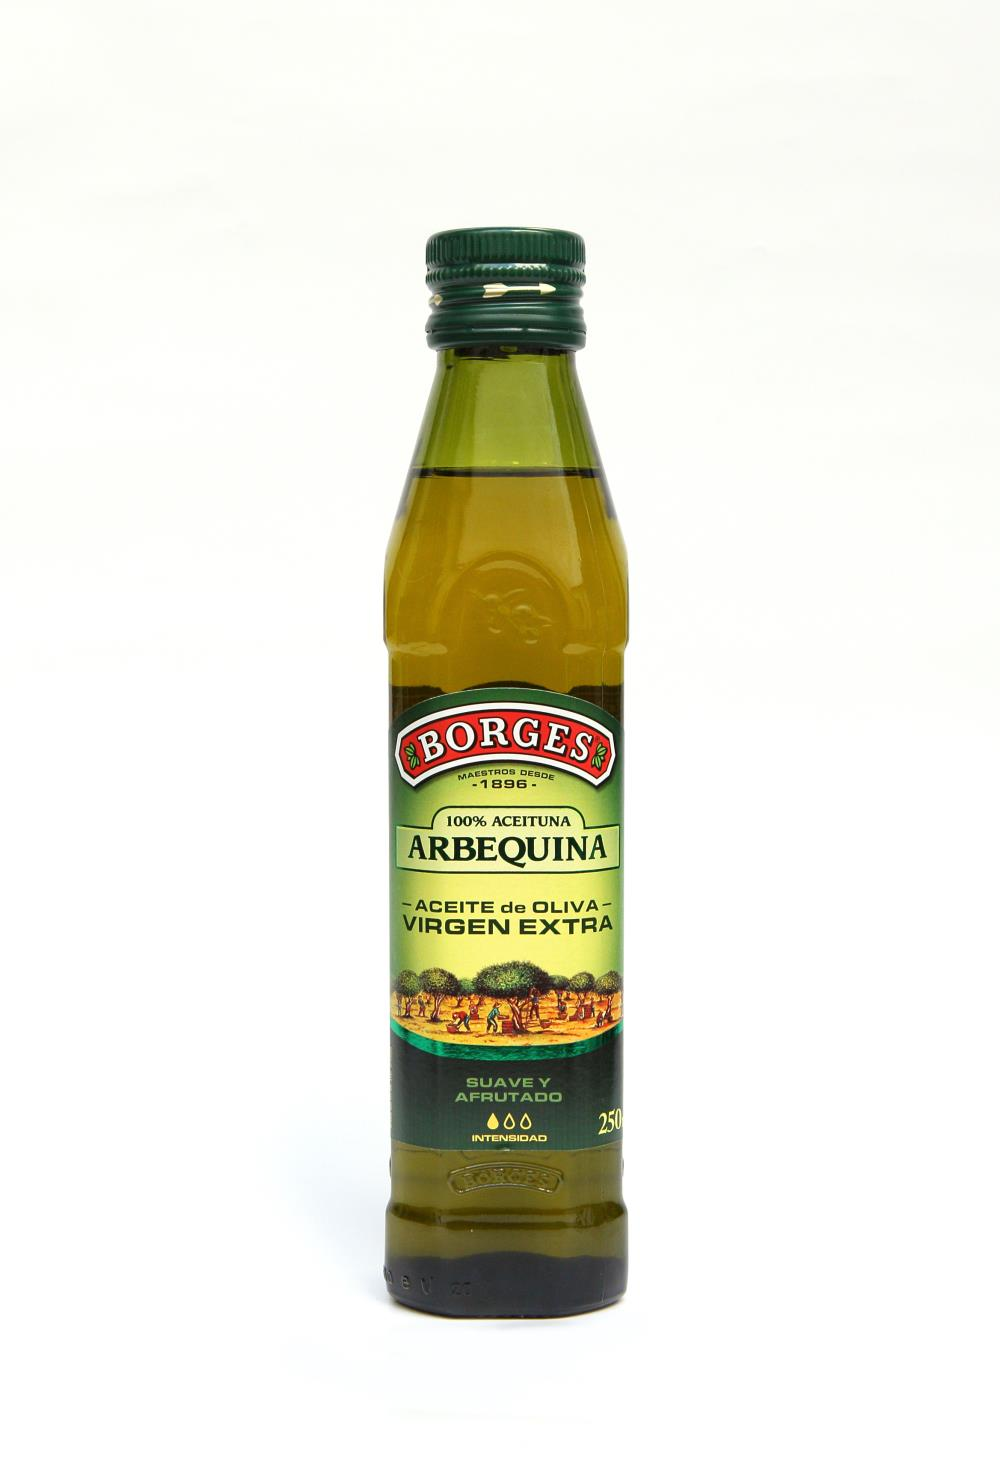 VIRGEN EXTRA ARBEQUINA BORGES 12ud 250ml